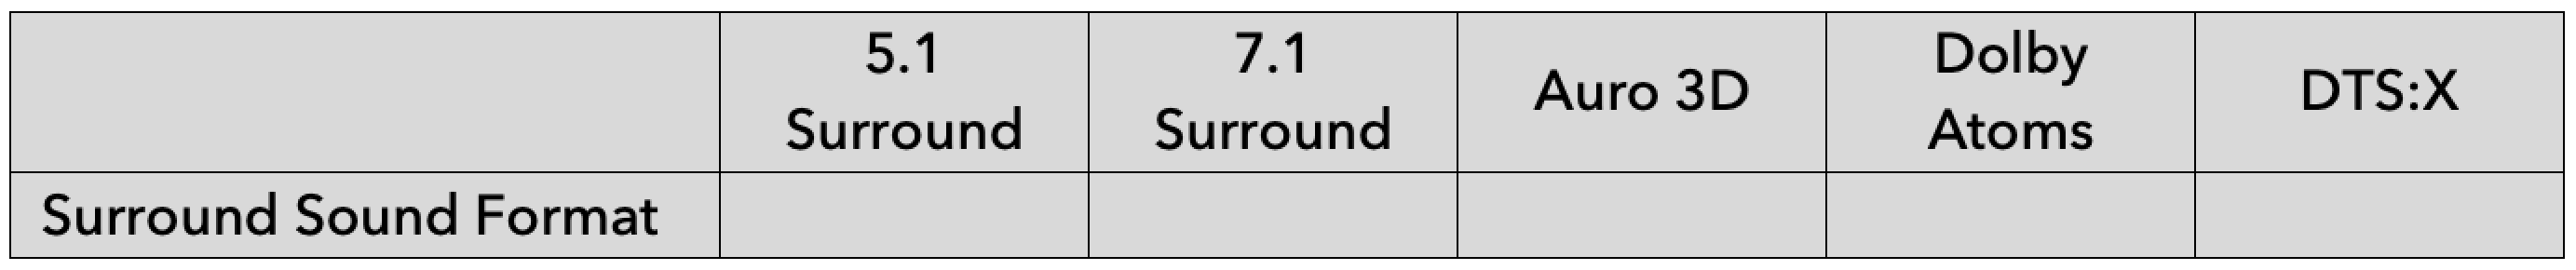 Clarifying surround sound formats for home cinema